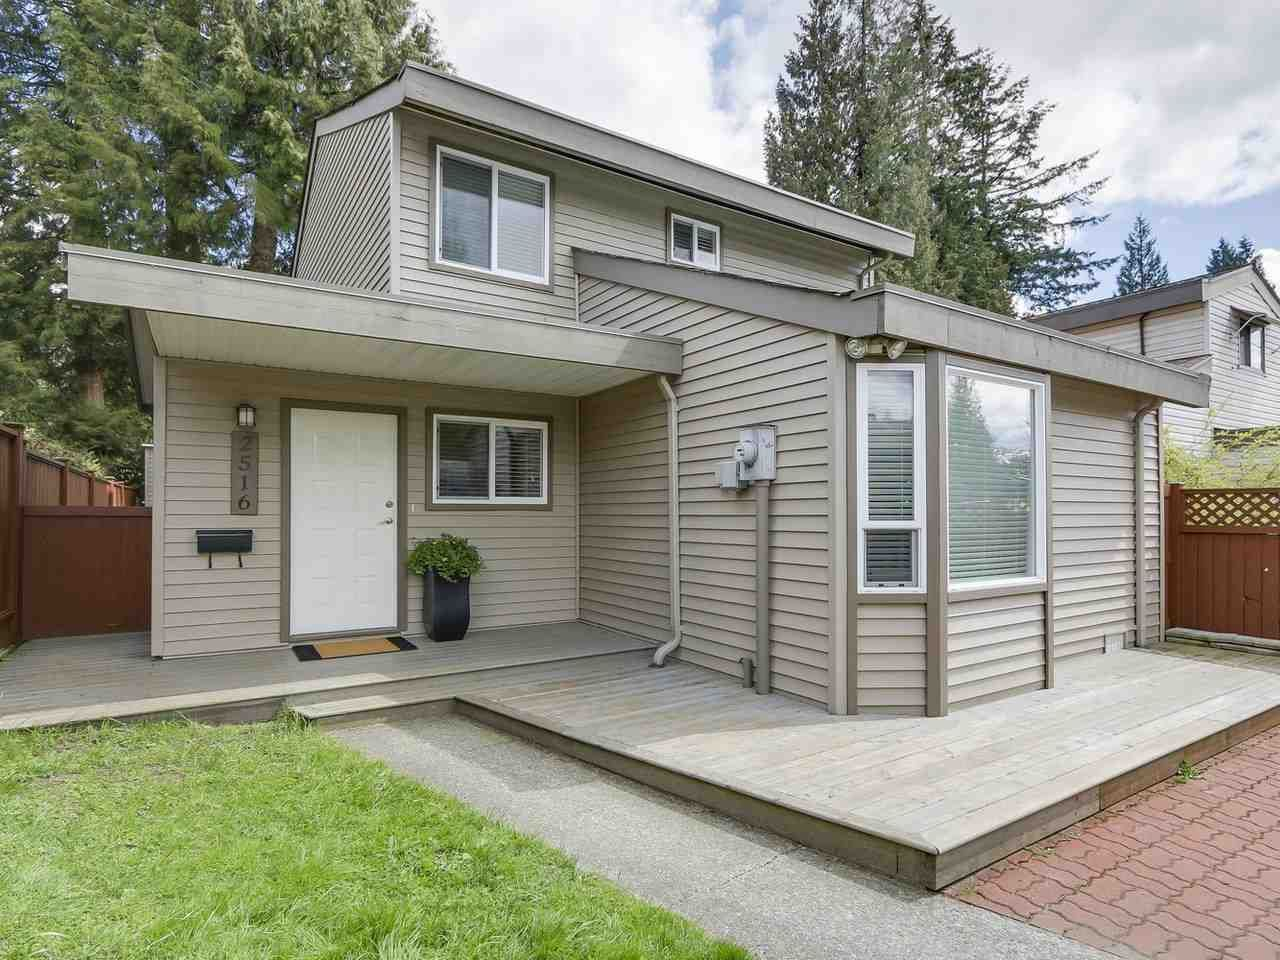 Main Photo: 2516 BURIAN Drive in Coquitlam: Coquitlam East House for sale : MLS®# R2161044